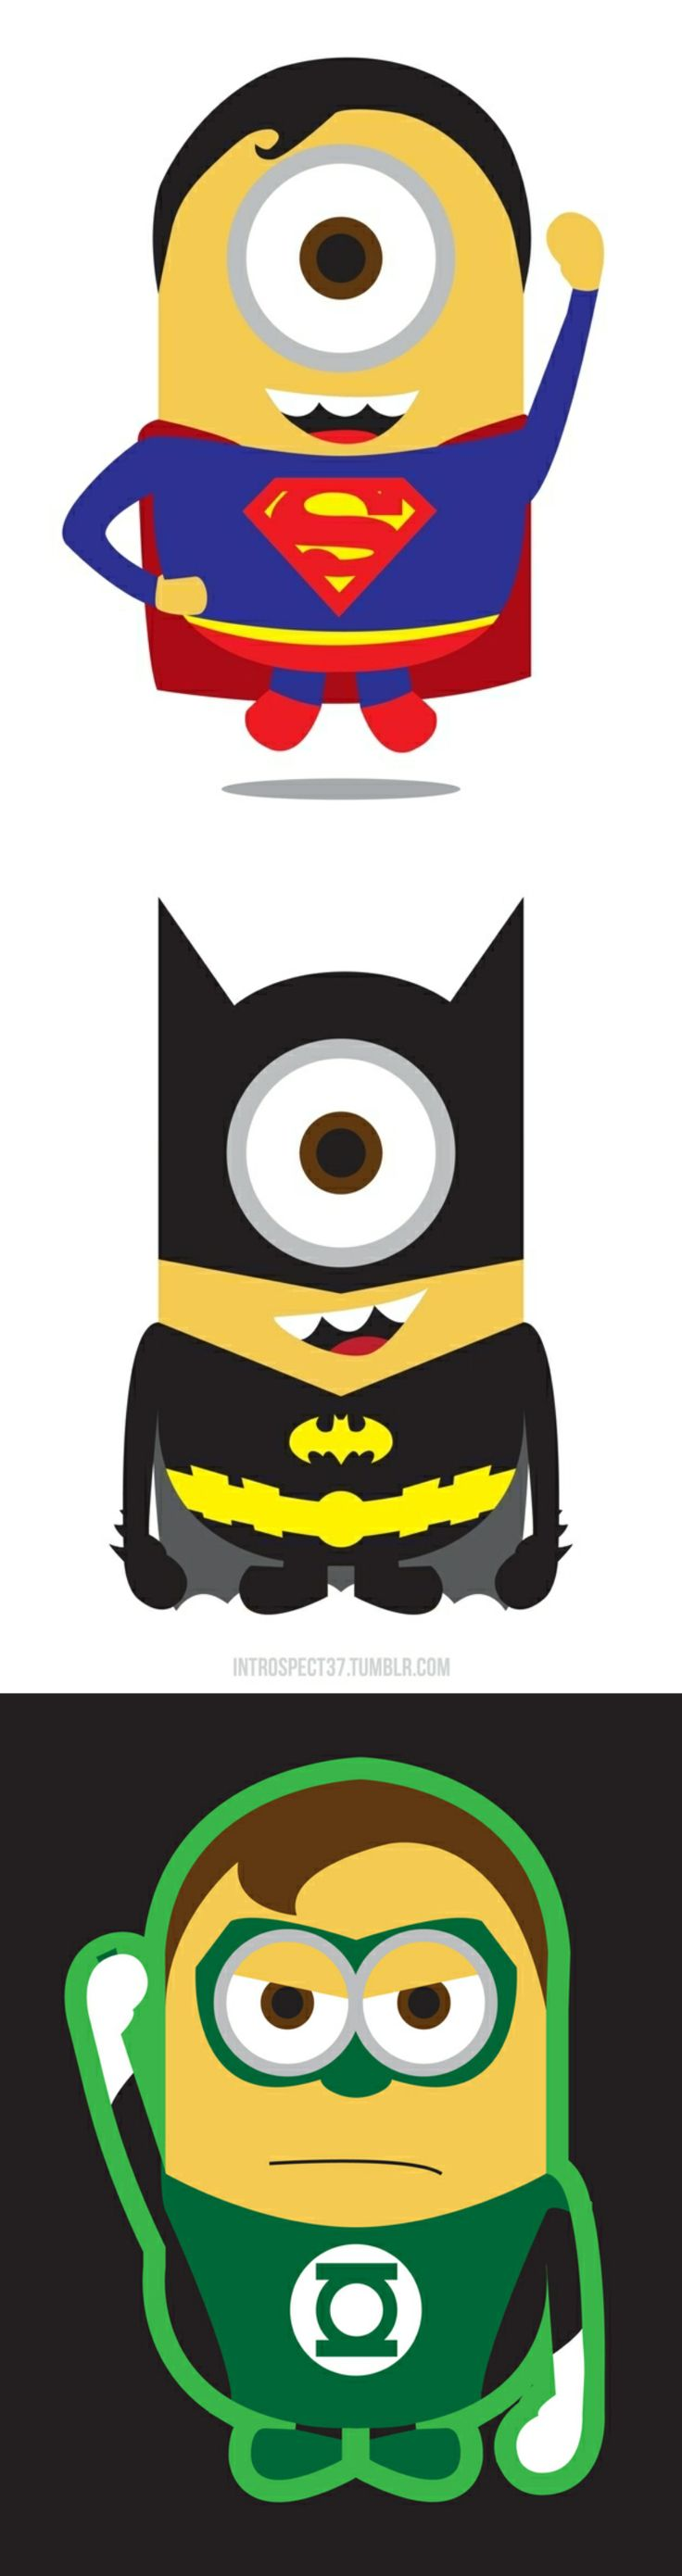 """Despicable Me"" Minions As DC Superheroes  The minions of the movie ""Despicable Me"" in their new alternate heroic adventures. By Kevin Magic Lam."